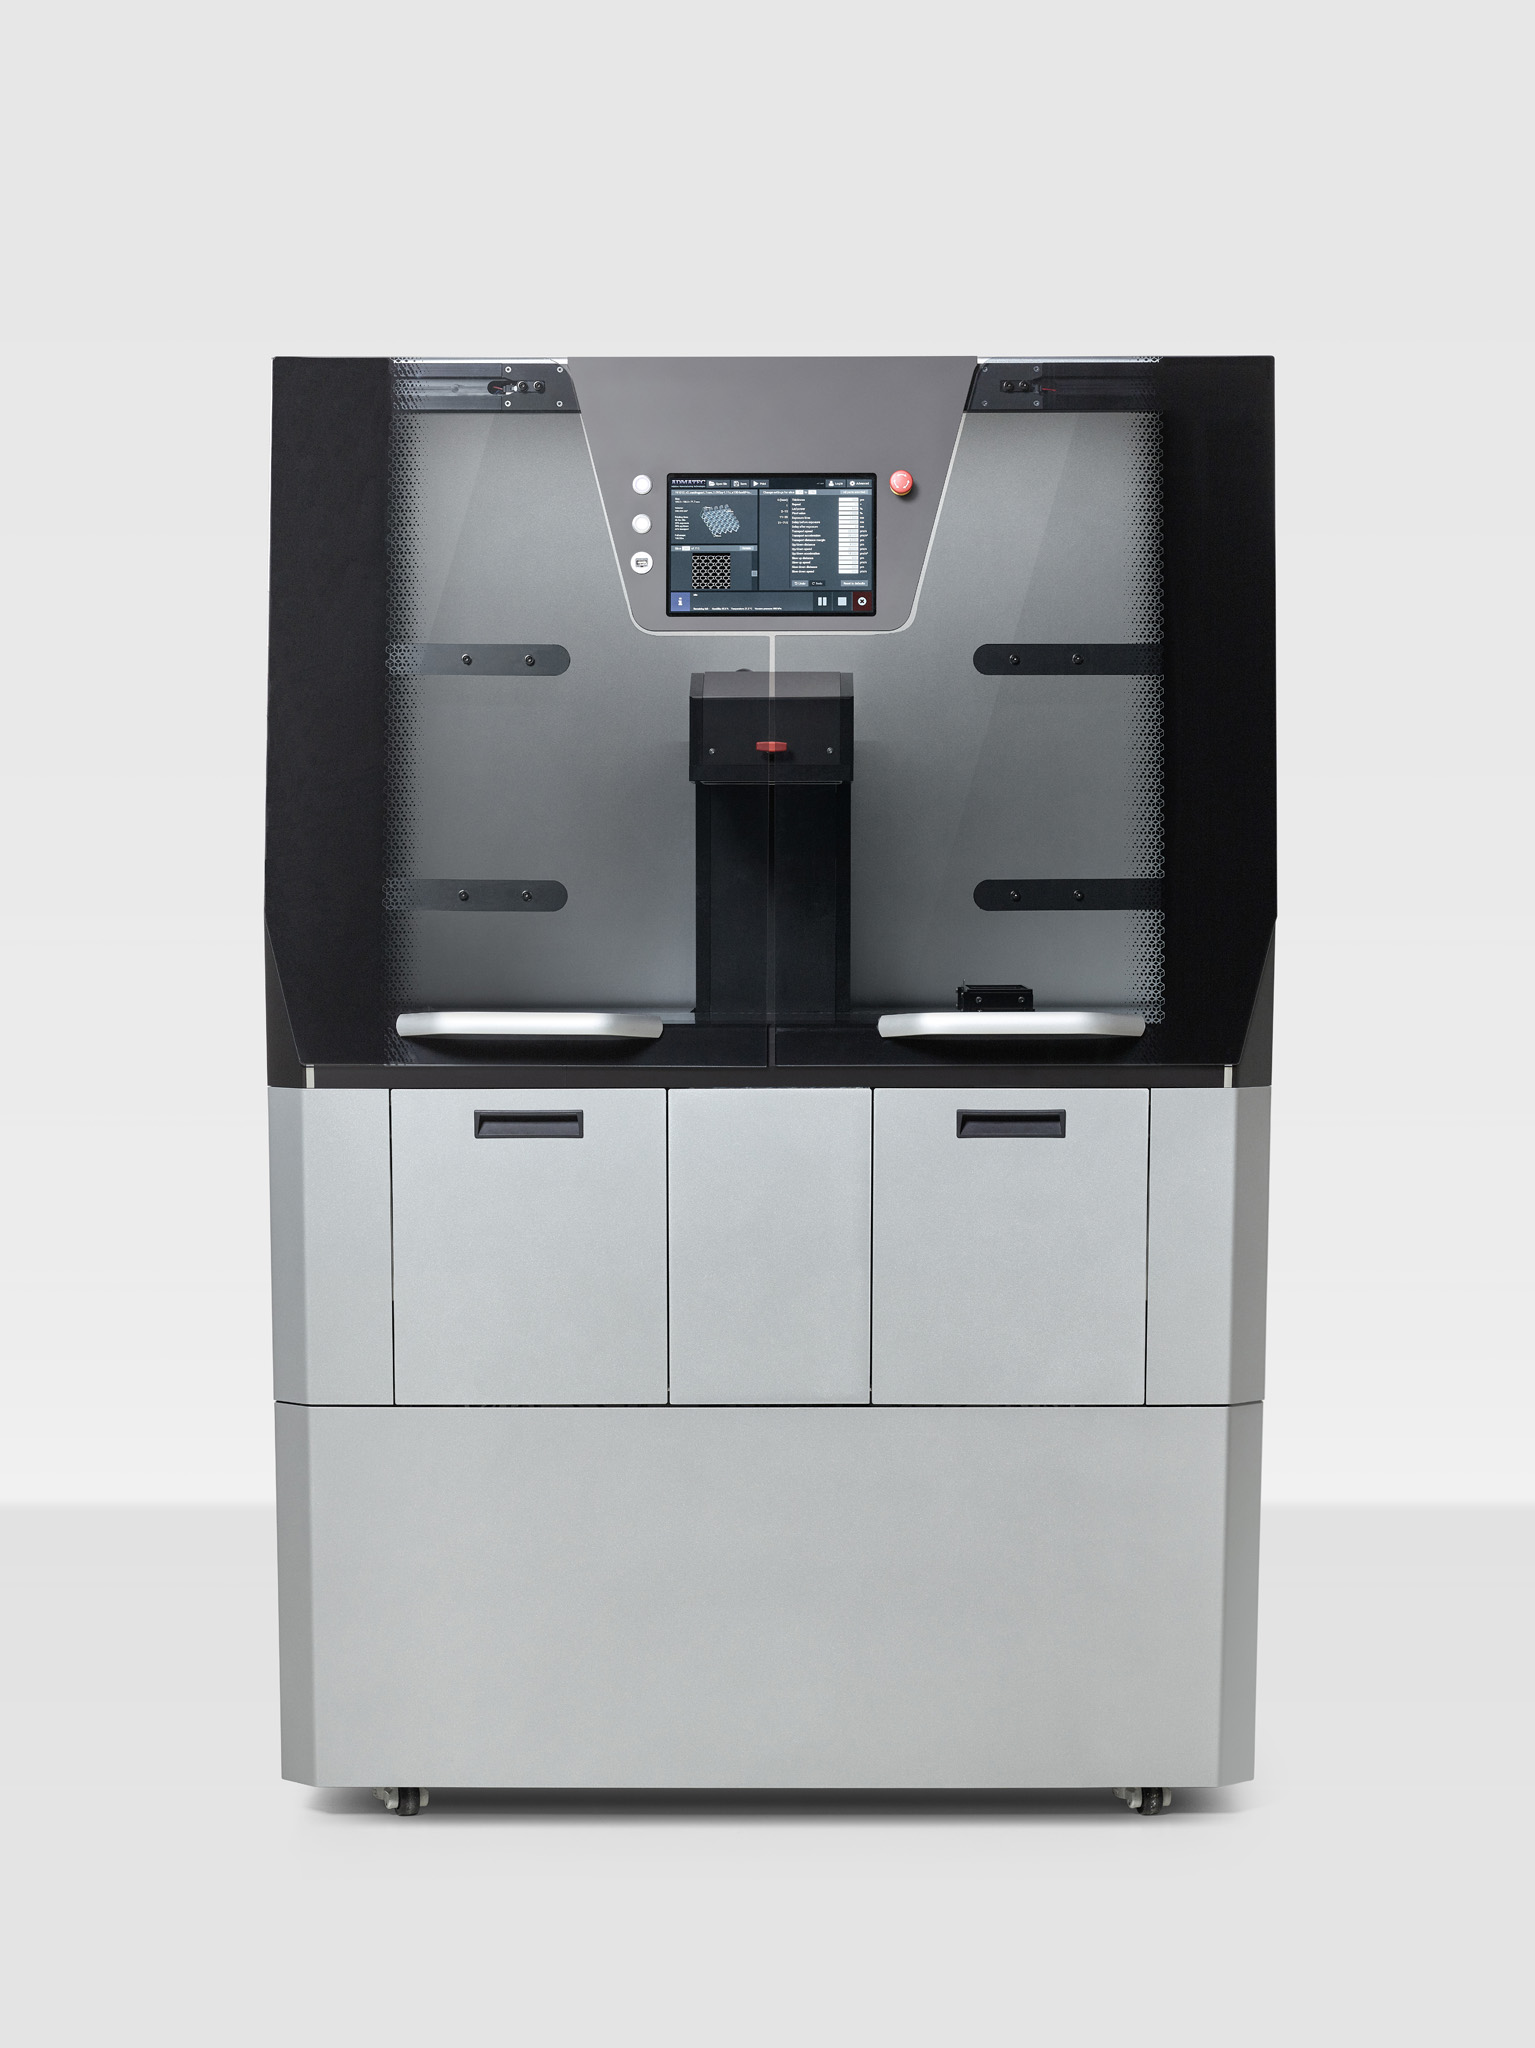 Admaflex 300 ceramic 3D printer. Photo via Admatec.